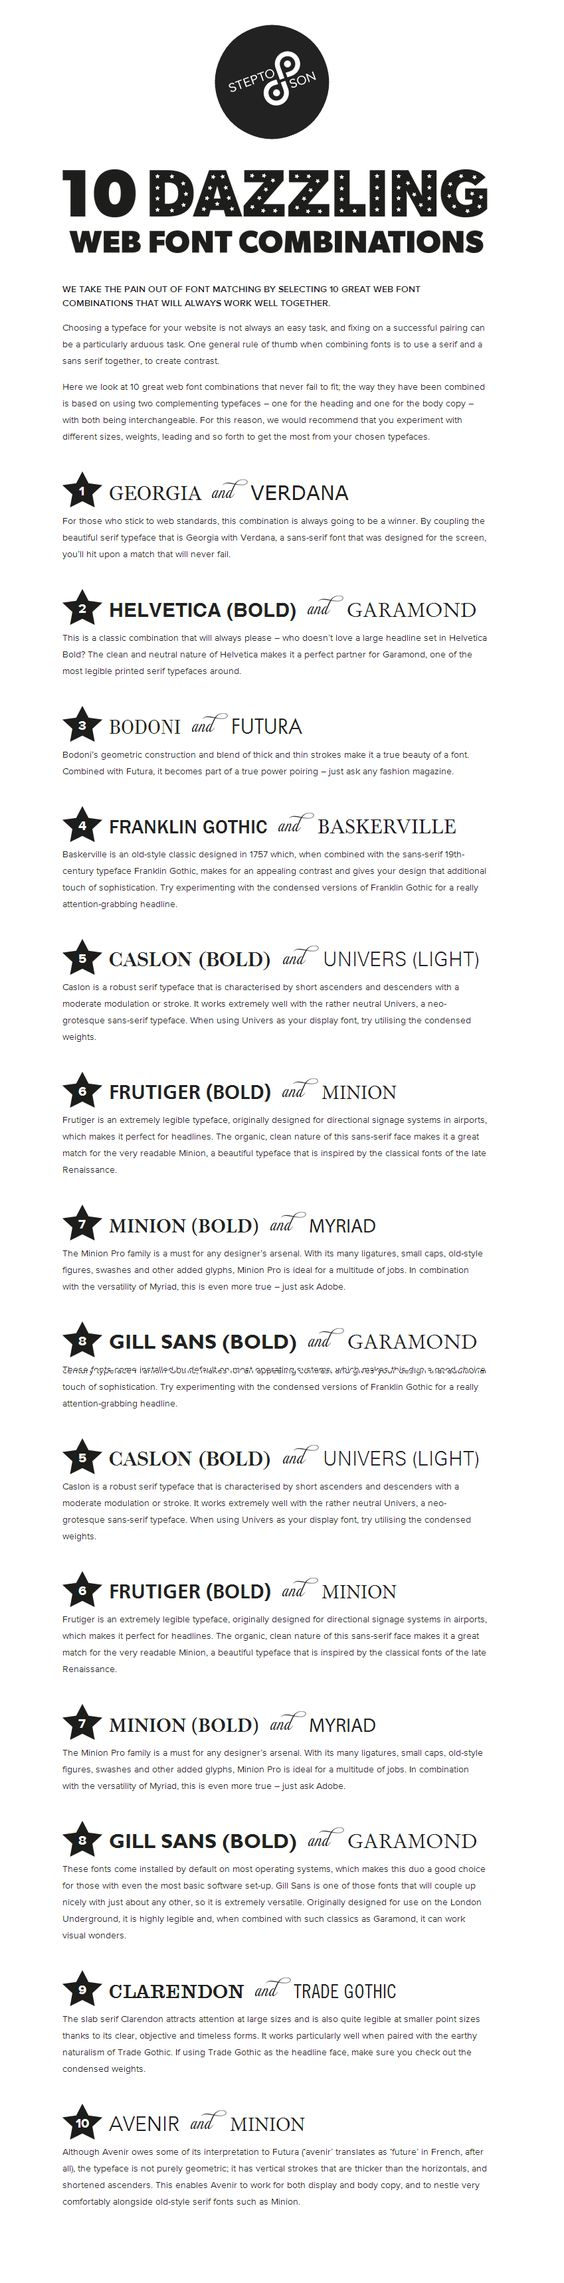 10 great web font combinations my fave is the number 1 combo